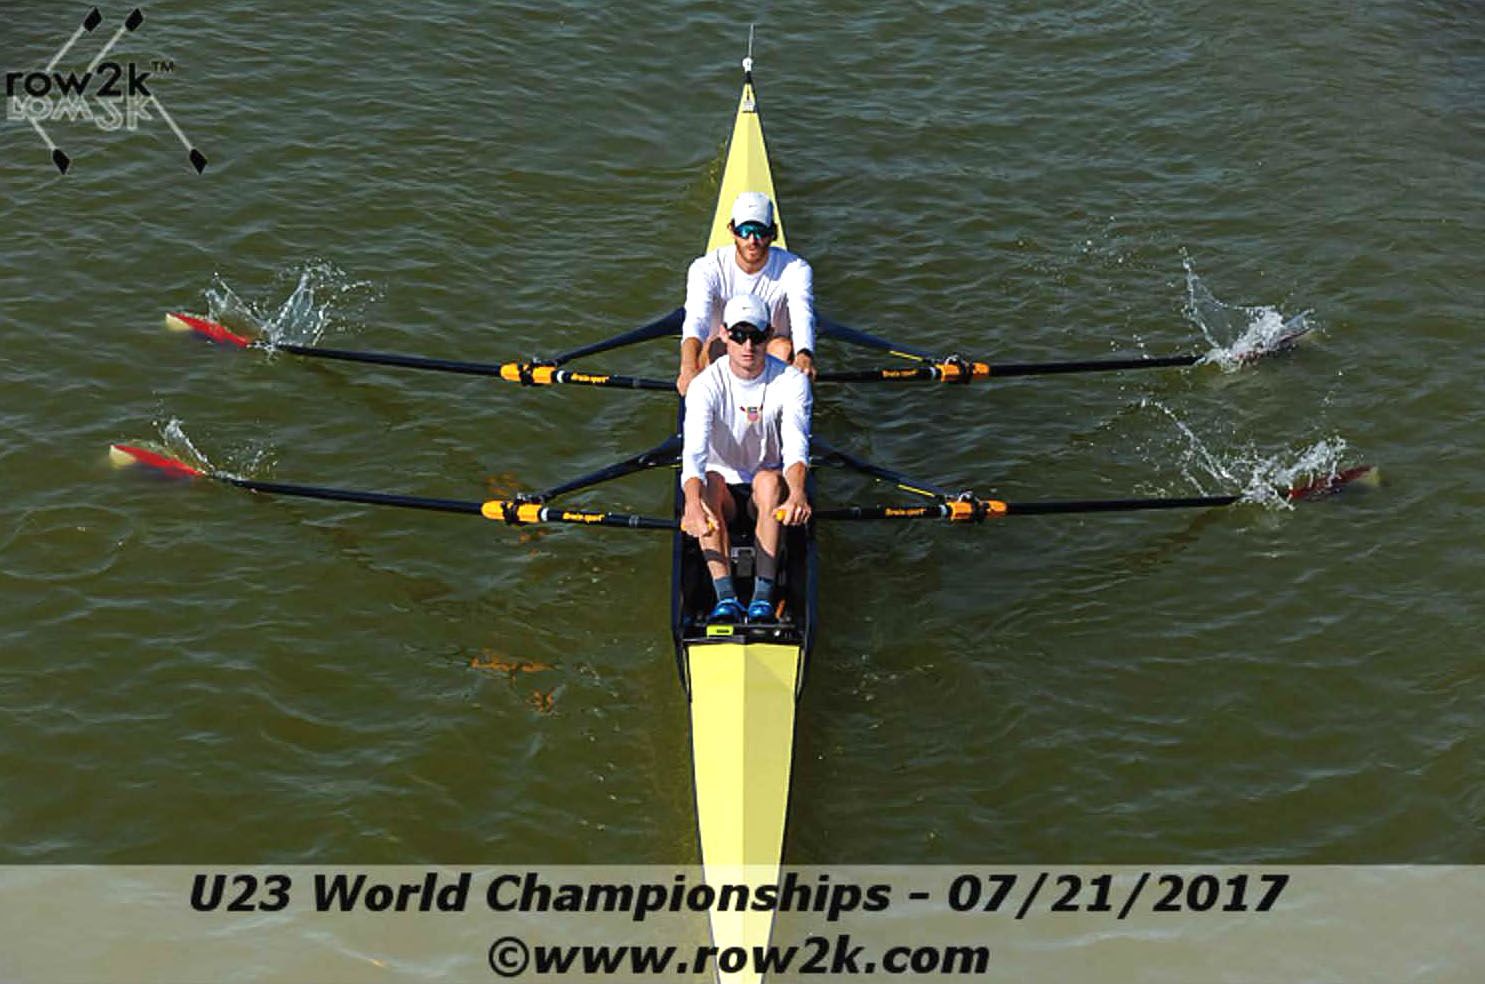 Rowing captains Galen Bernick and Danny Madden race in the Under 23 Rowing Championship in July.